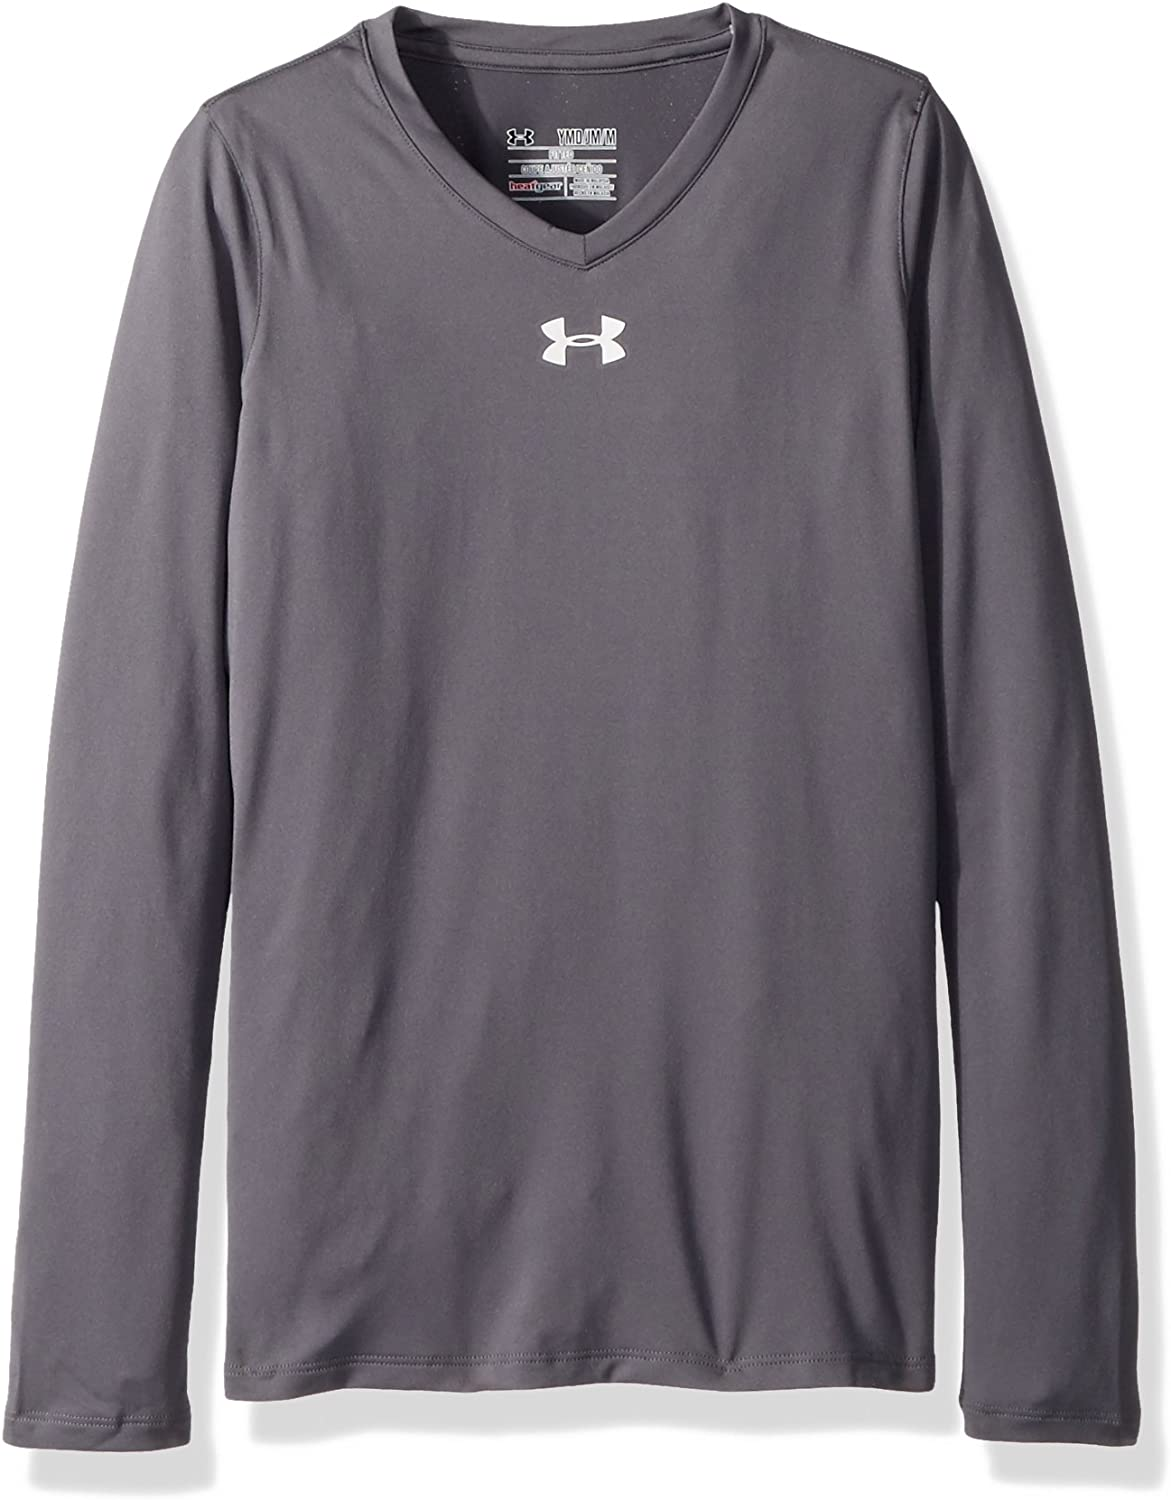 Under Armour Girls' Power Alley Long Sleeve